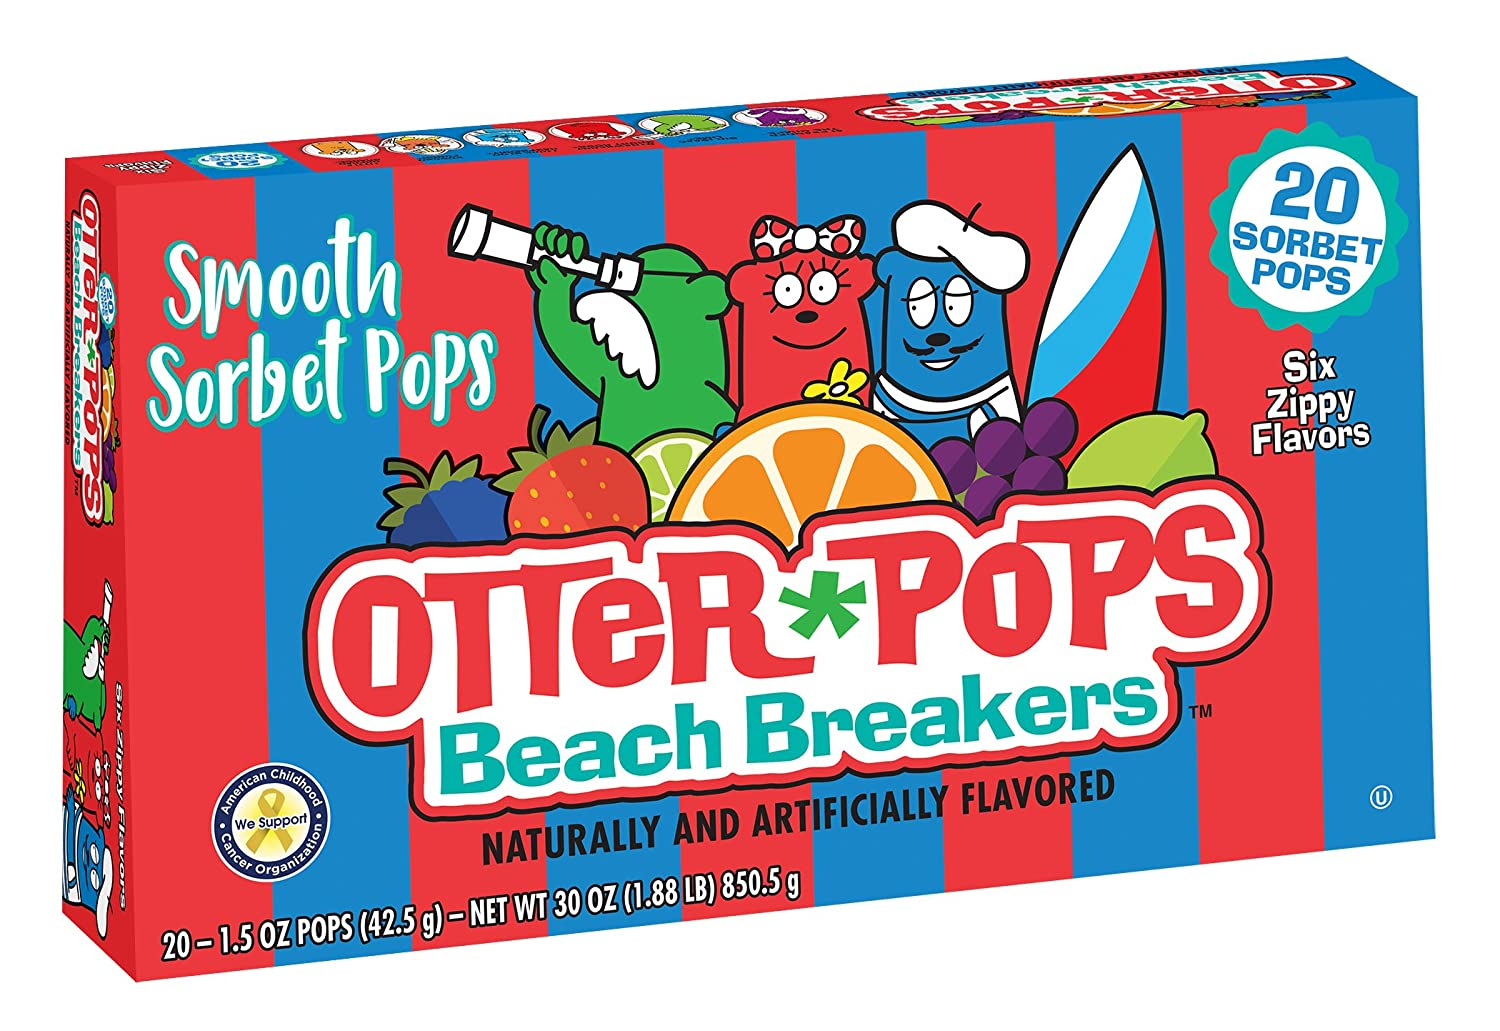 Otter Pops, Beach Breakers Smooth Sorbet Freezer Pops, Variety Pack (12 Boxes, 20 - 1.5 oz pops per box)